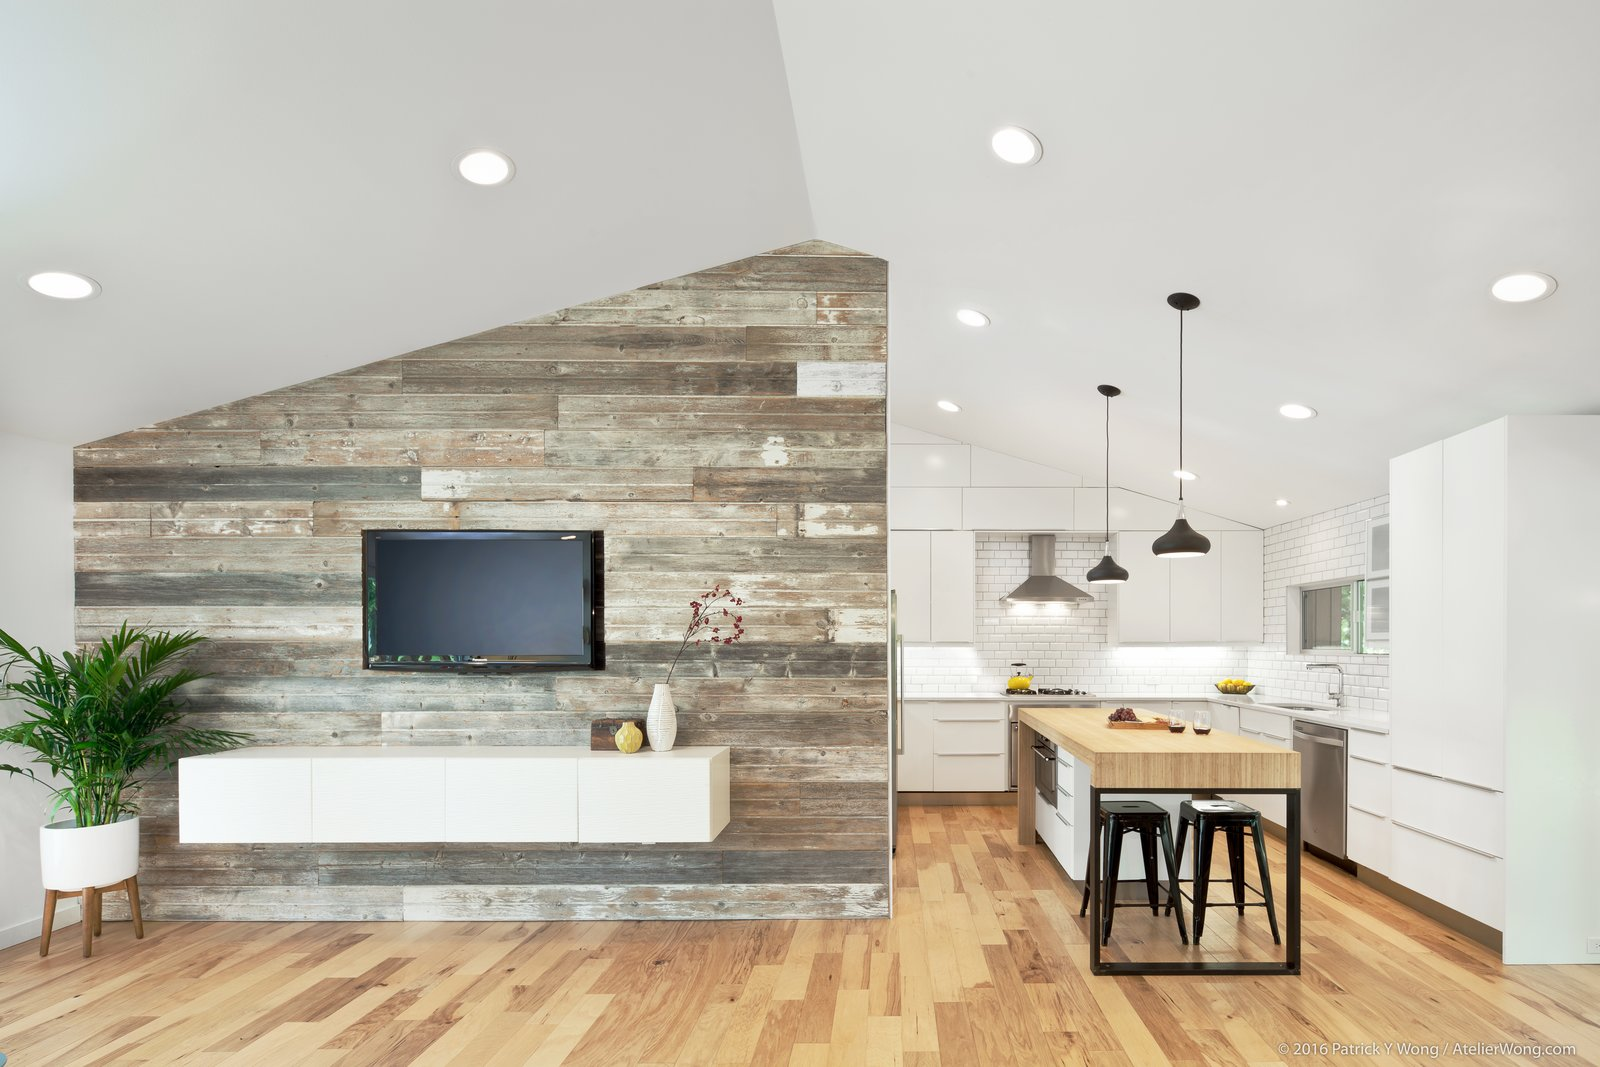 Kitchen, Medium Hardwood Floor, White Cabinet, Ceramic Tile Backsplashe, Recessed Lighting, and Pendant Lighting  Photo 6 of 14 in An Austin Couple Turn a Ranch Home Into a Refreshing Live/Work Space